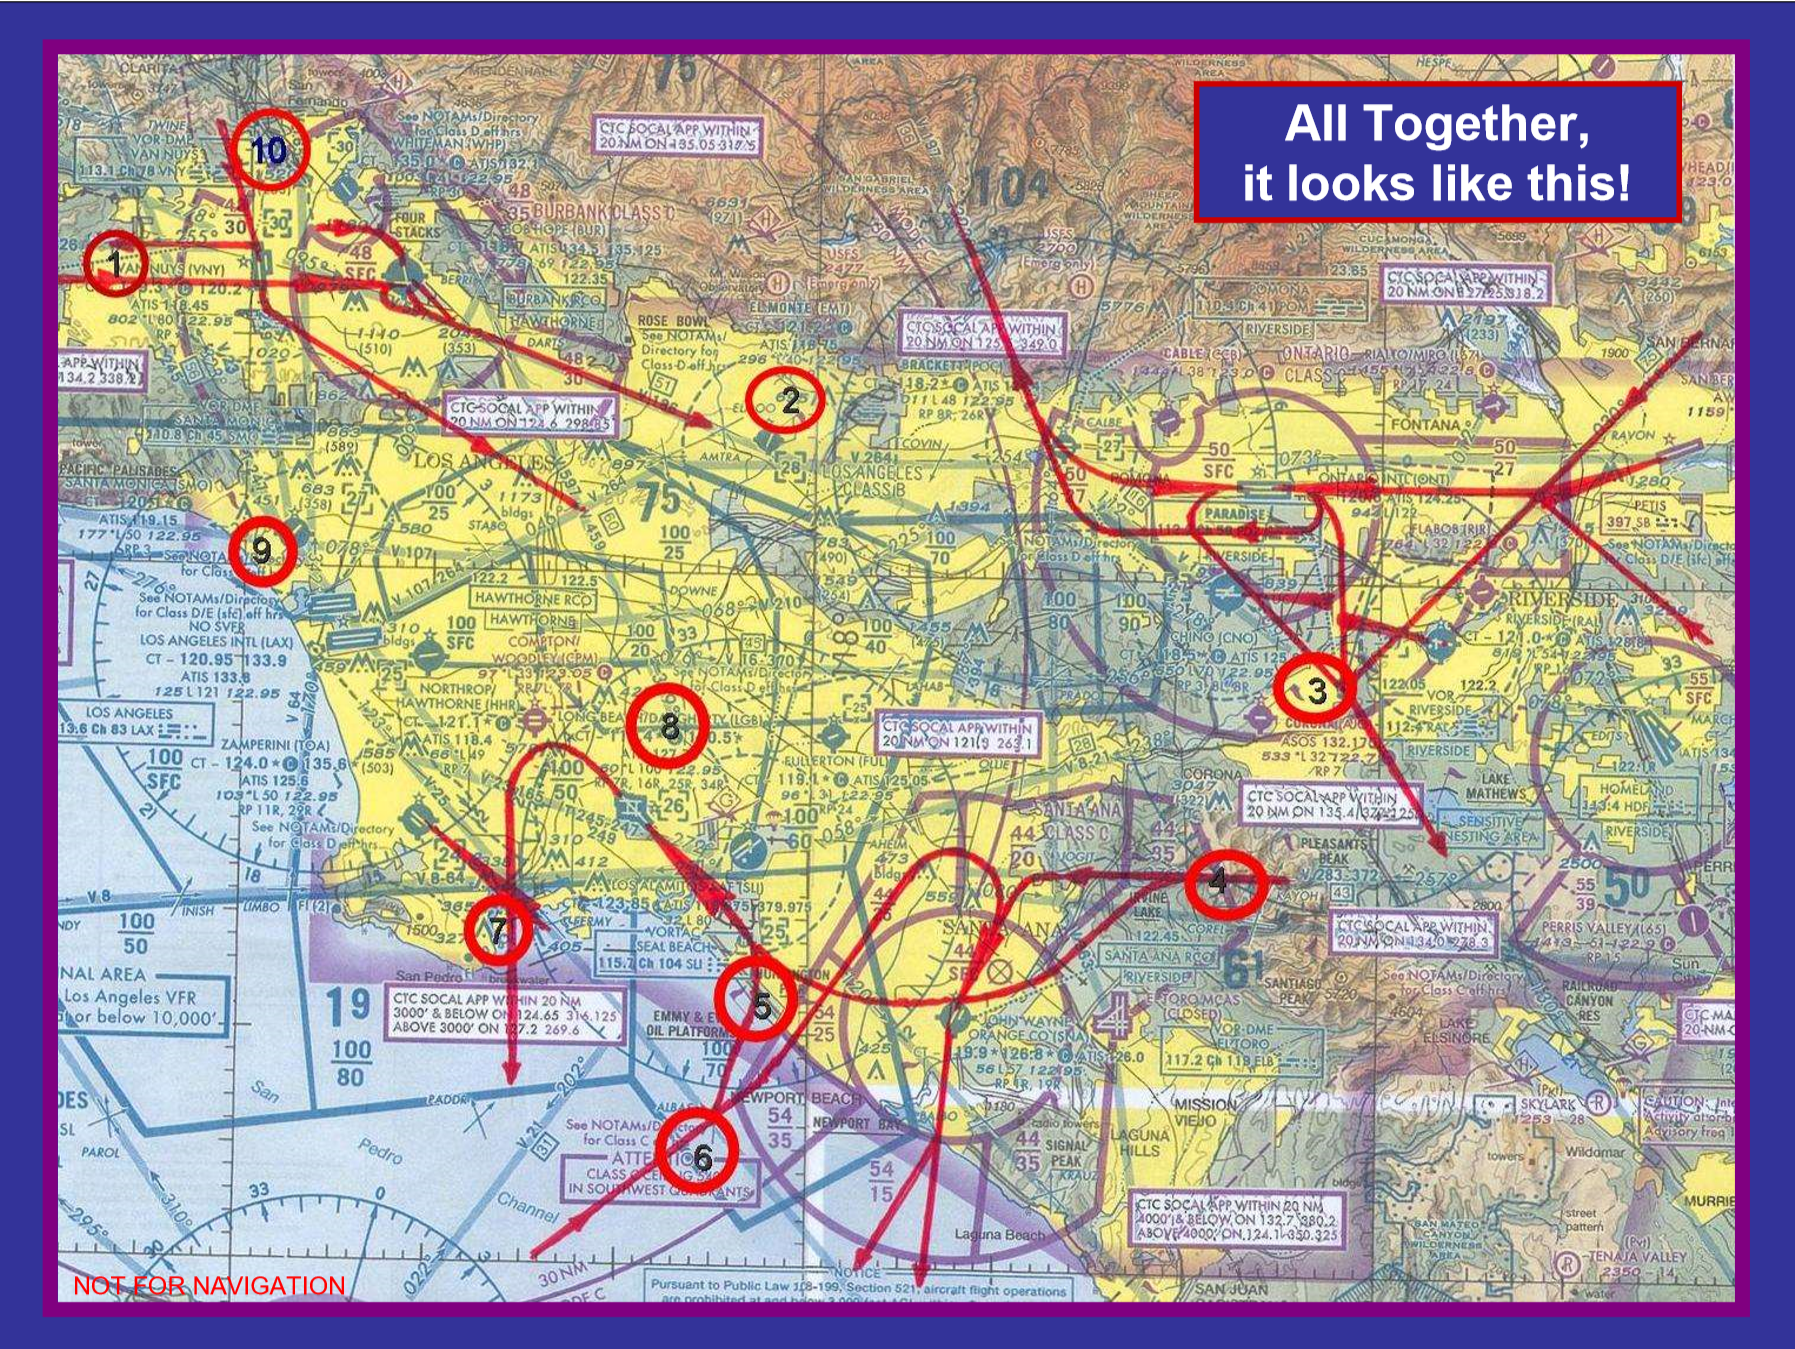 Hotspots - Southern California Airspace Users Working Group